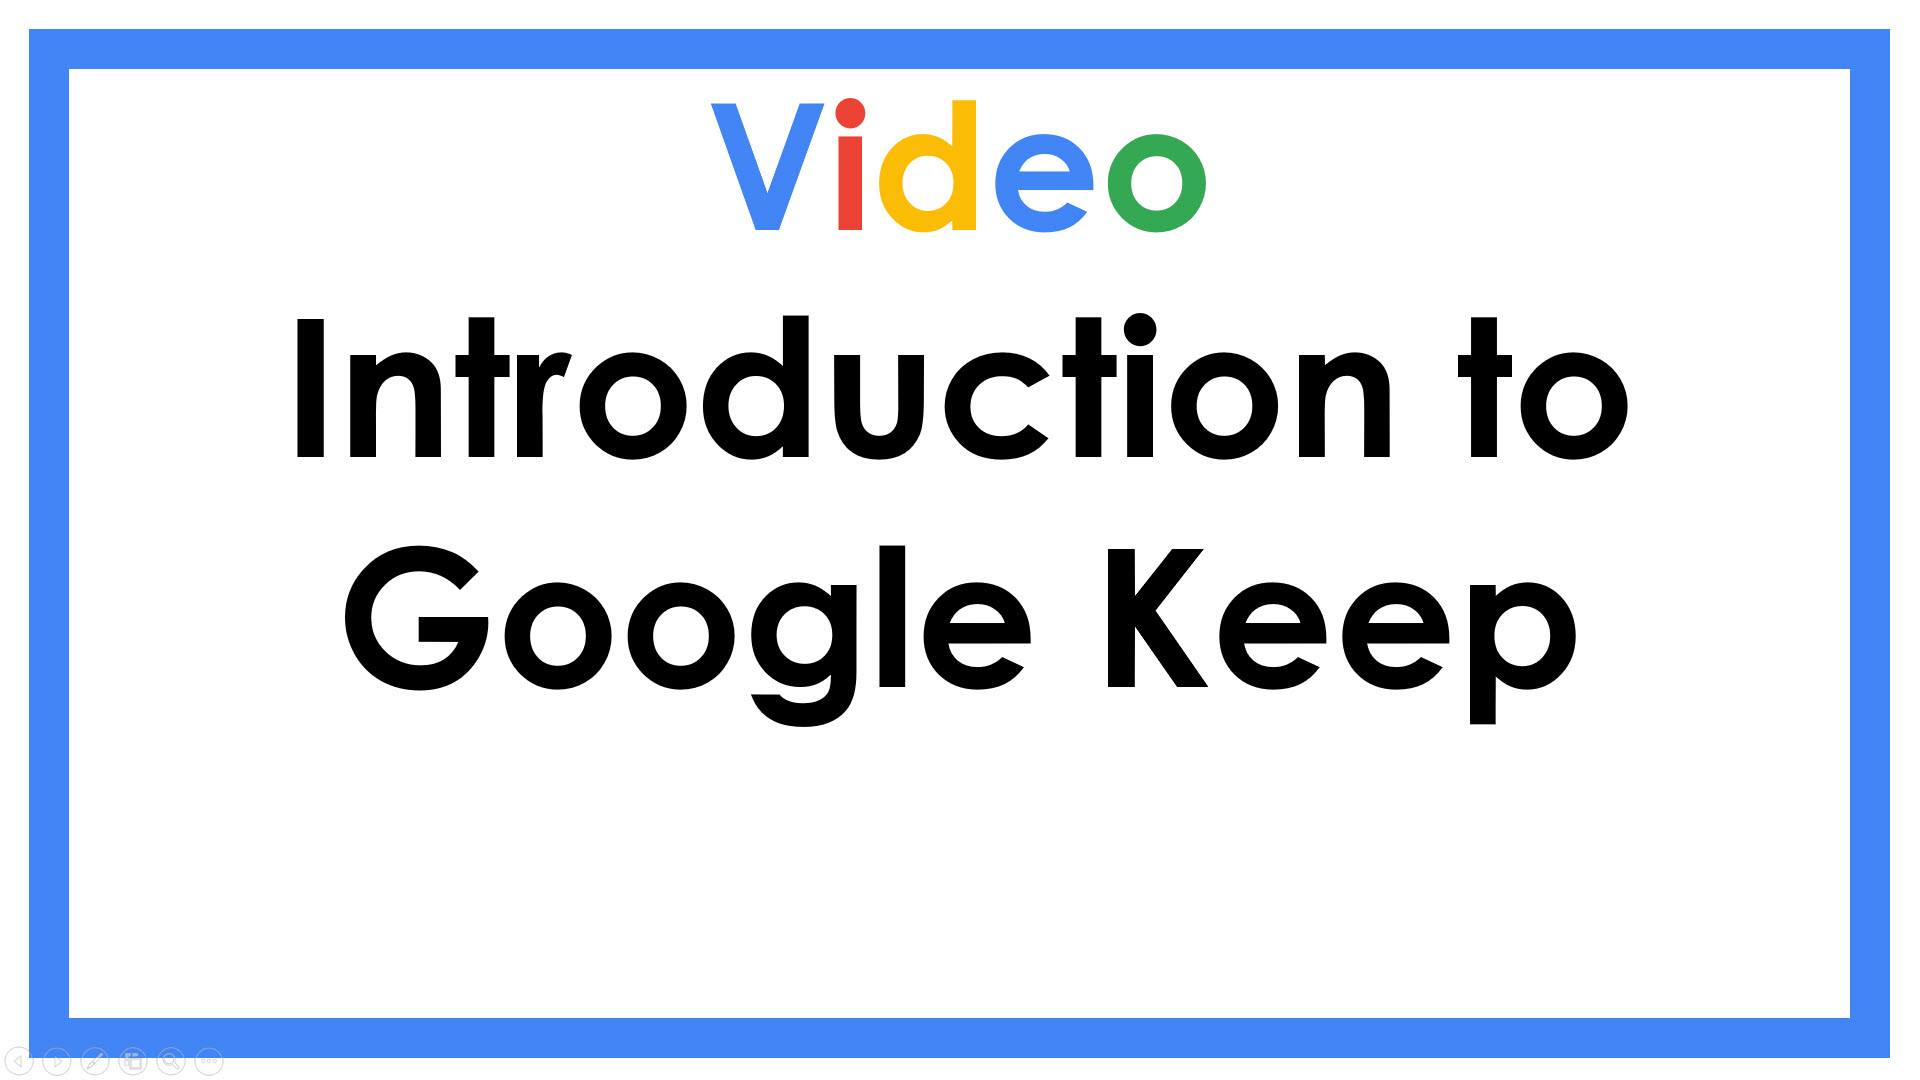 Introduction to Google Keep